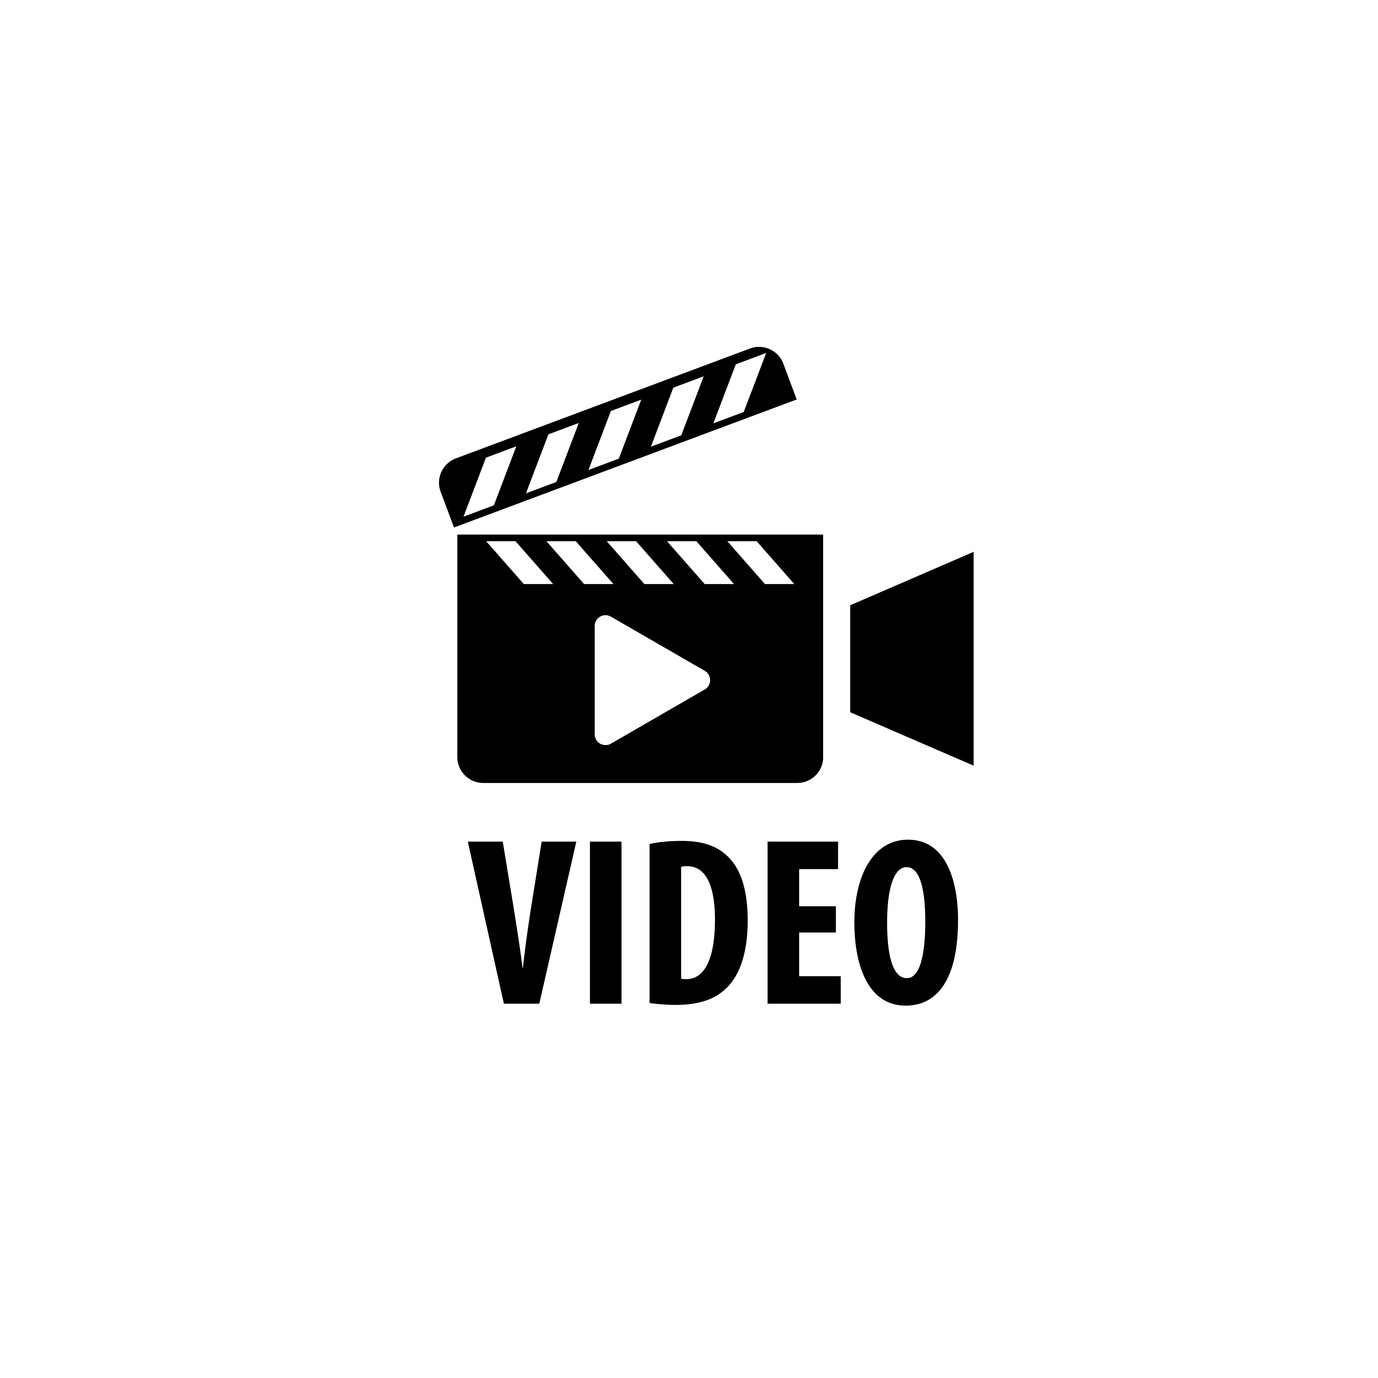 5 steps to create a cameraready video production logo